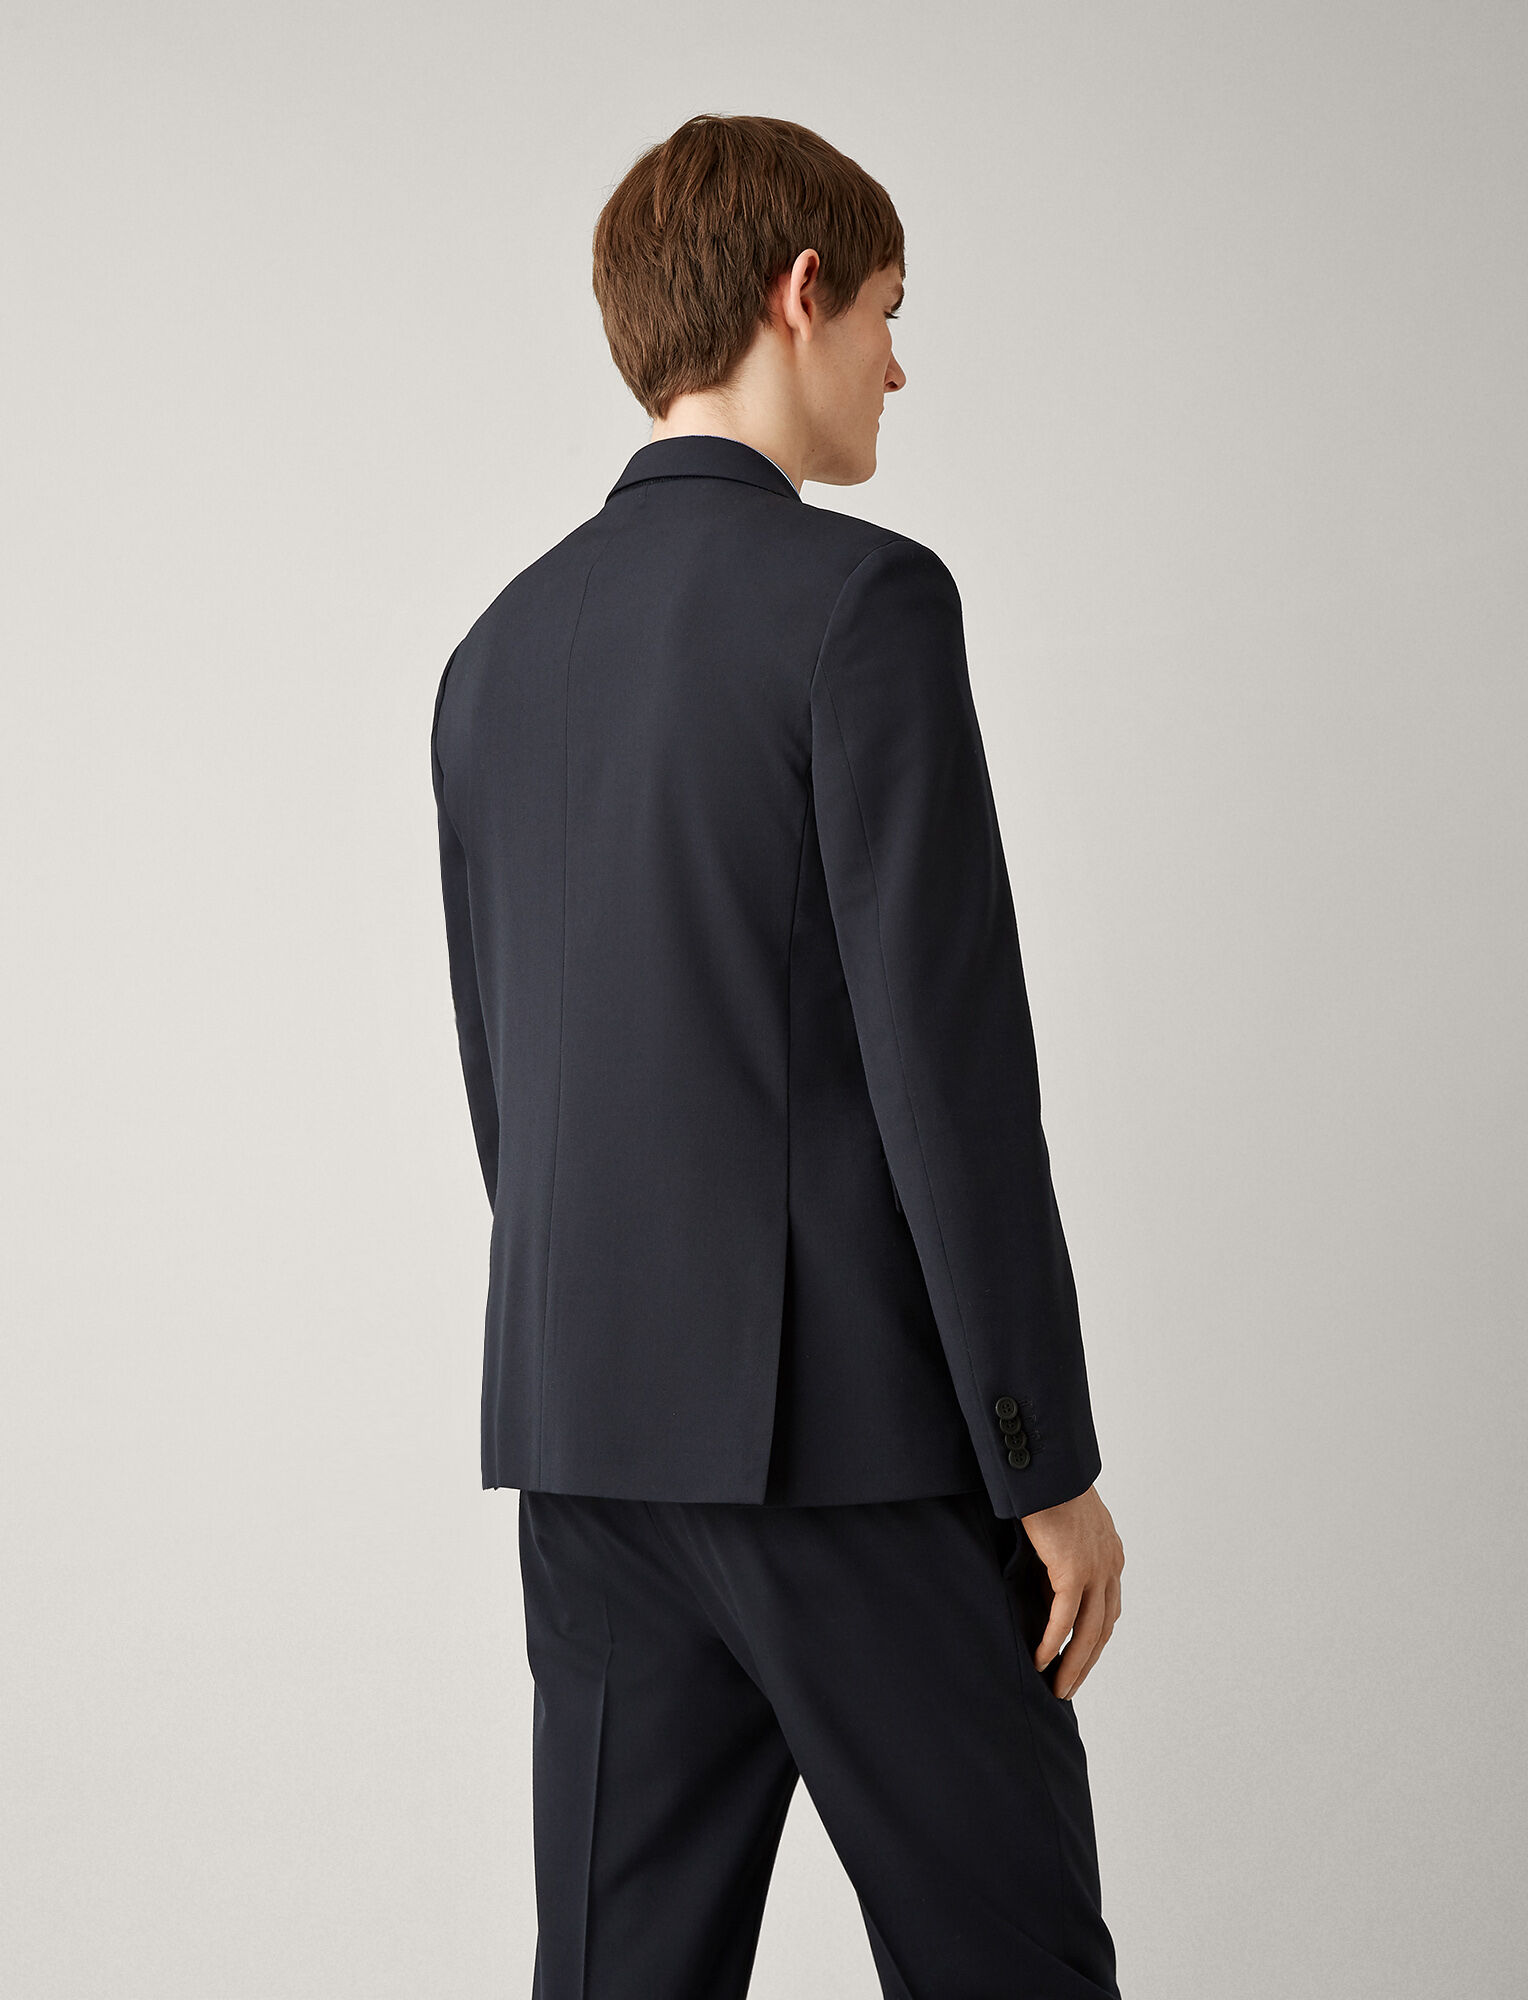 Joseph, Cannes Techno Wool Stretch Jacket, in NAVY